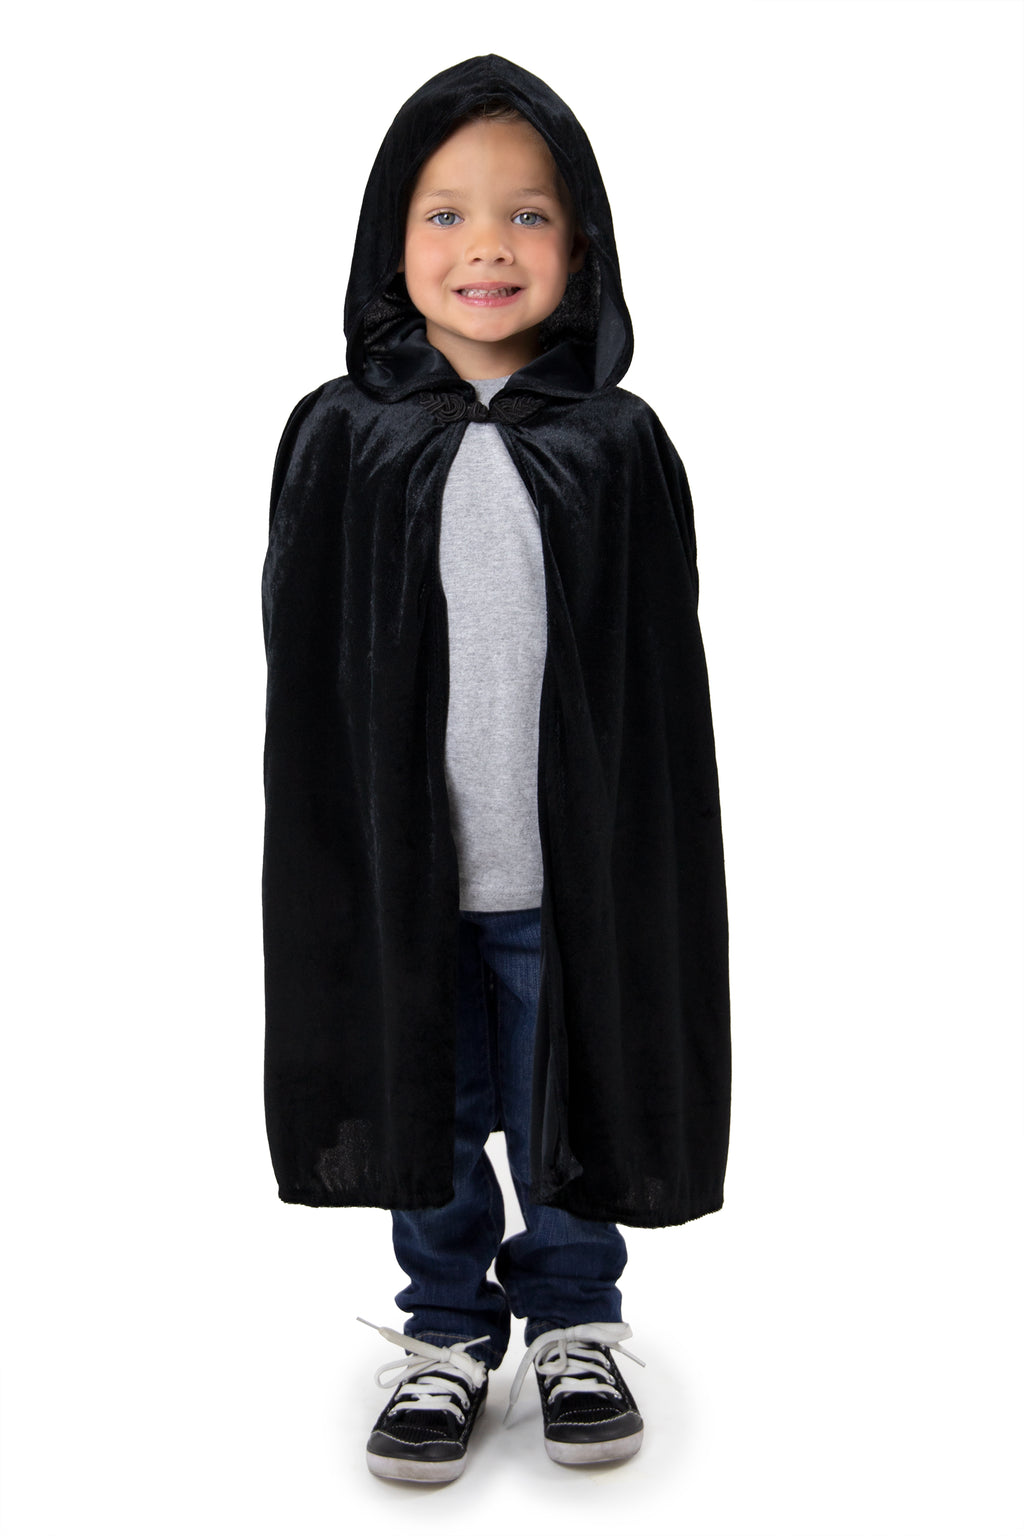 Child Cloak Black